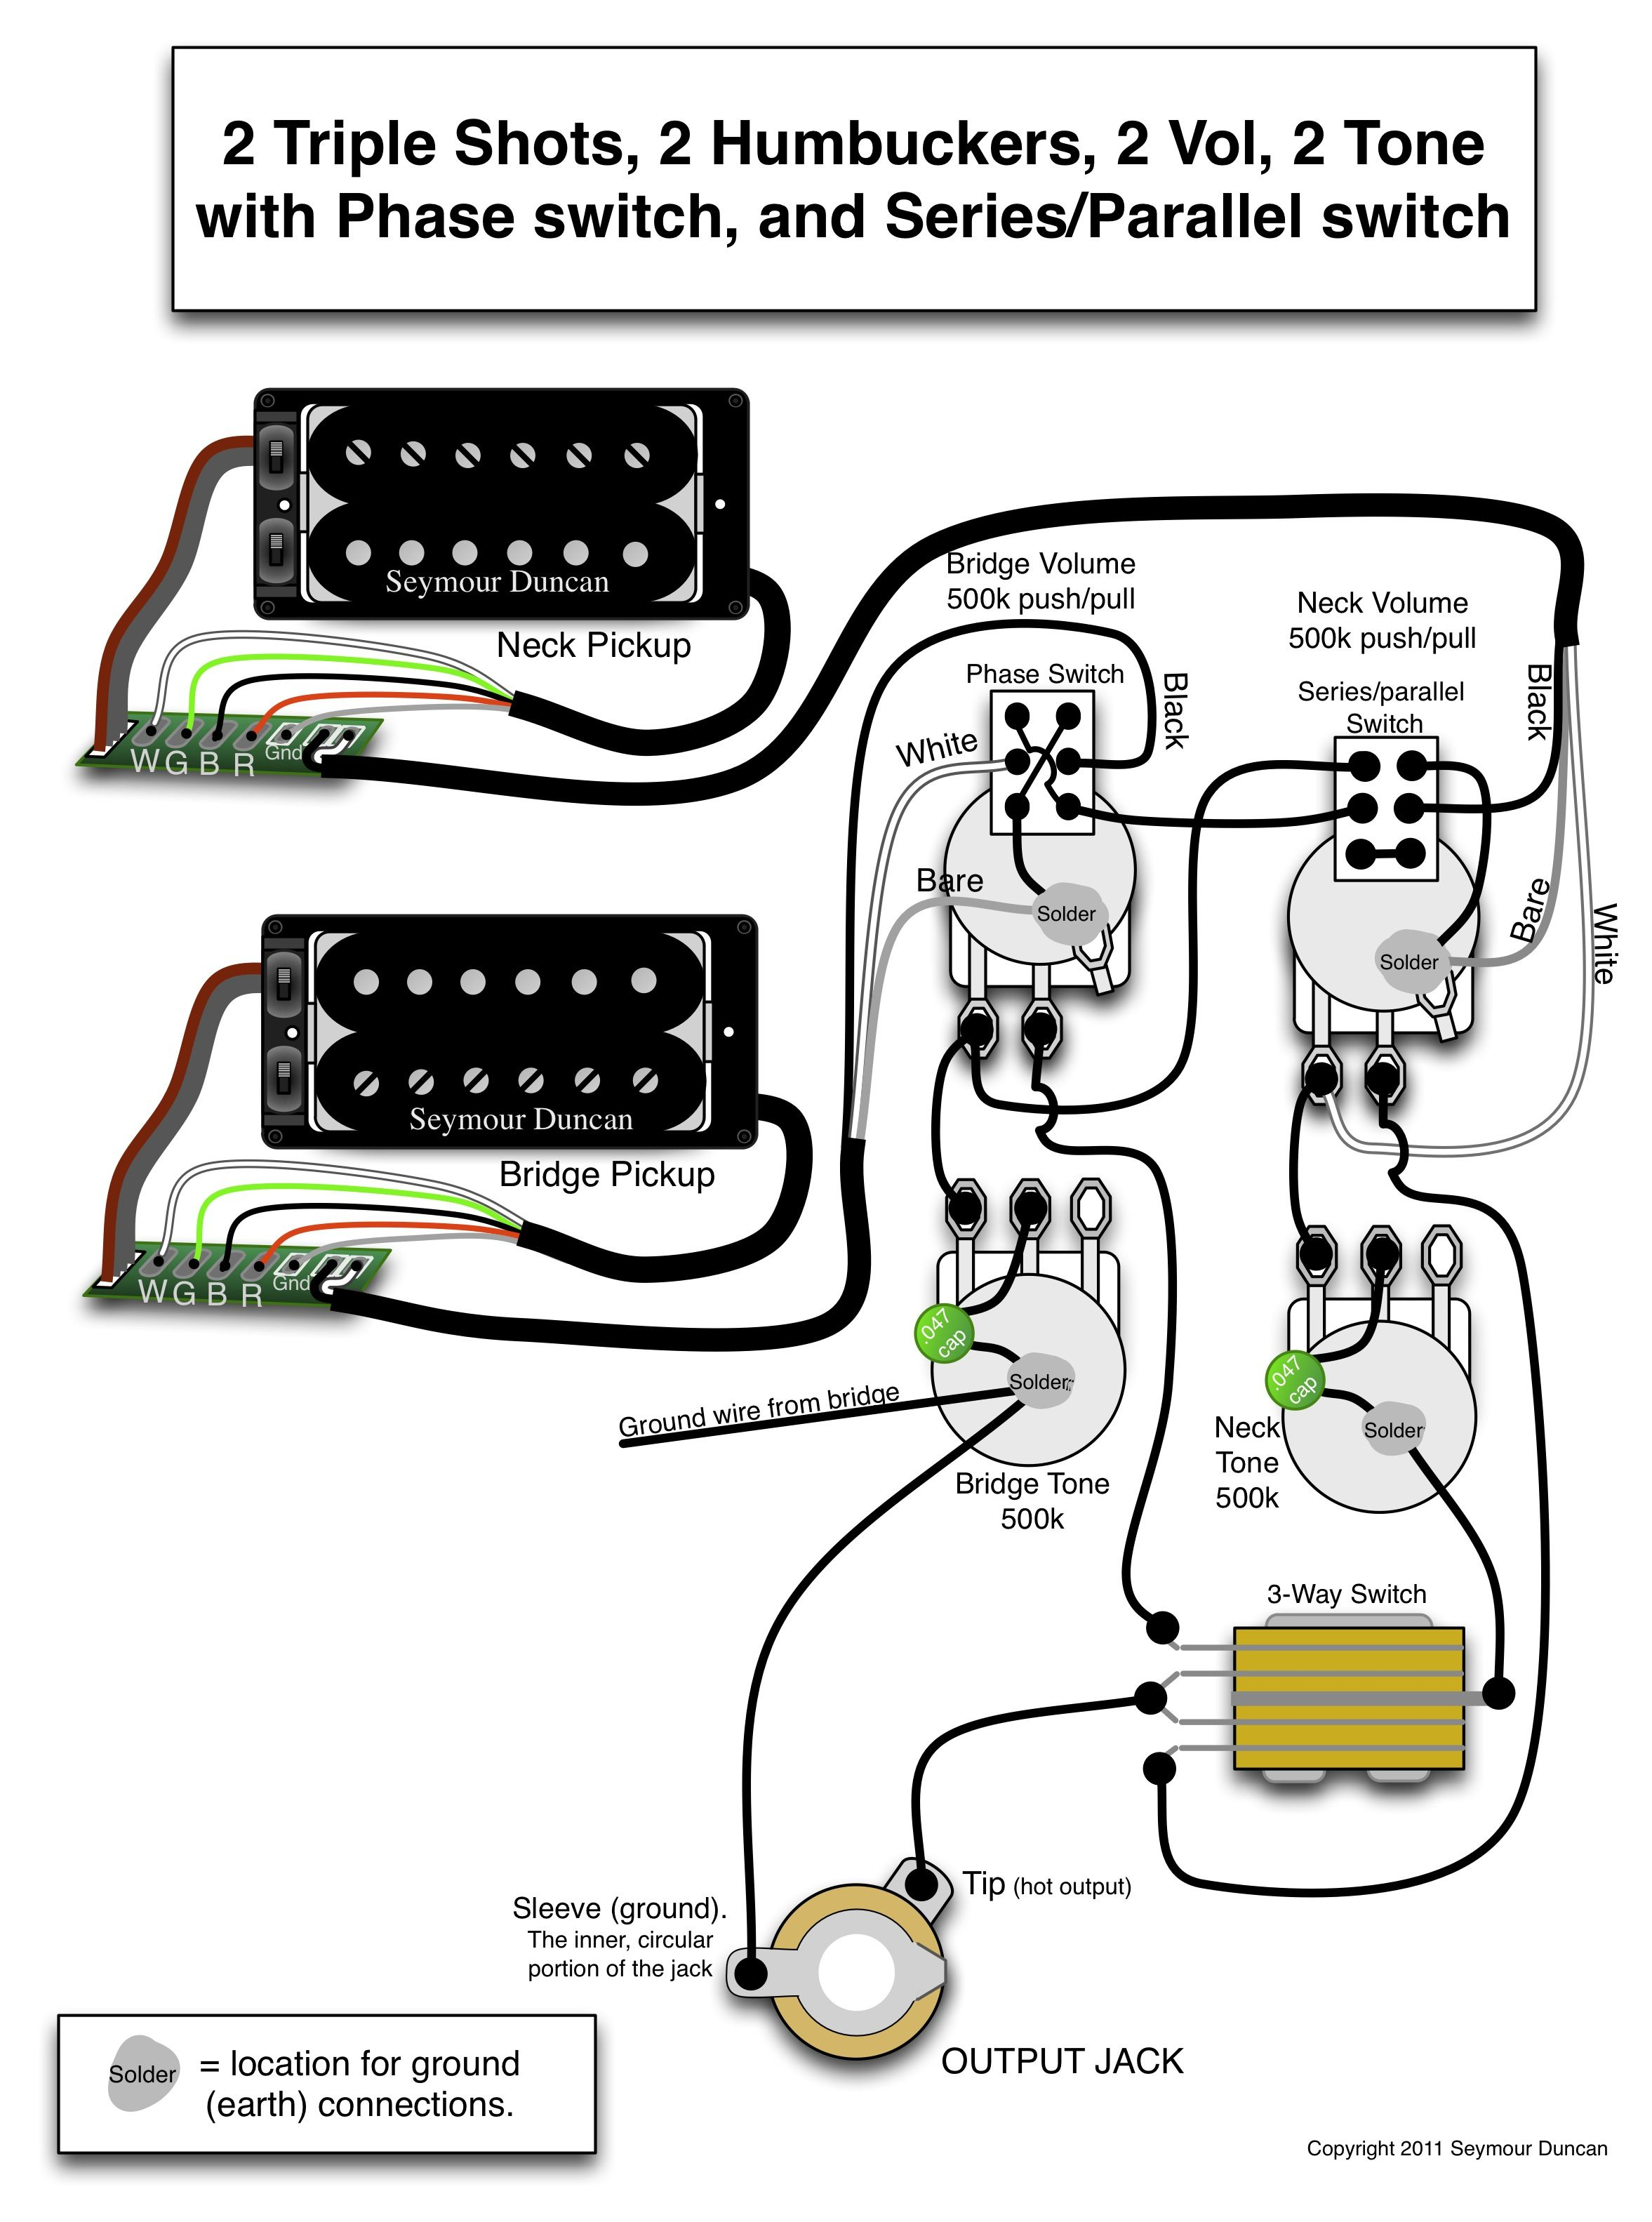 2 humbucker series parallel wiring diagrams